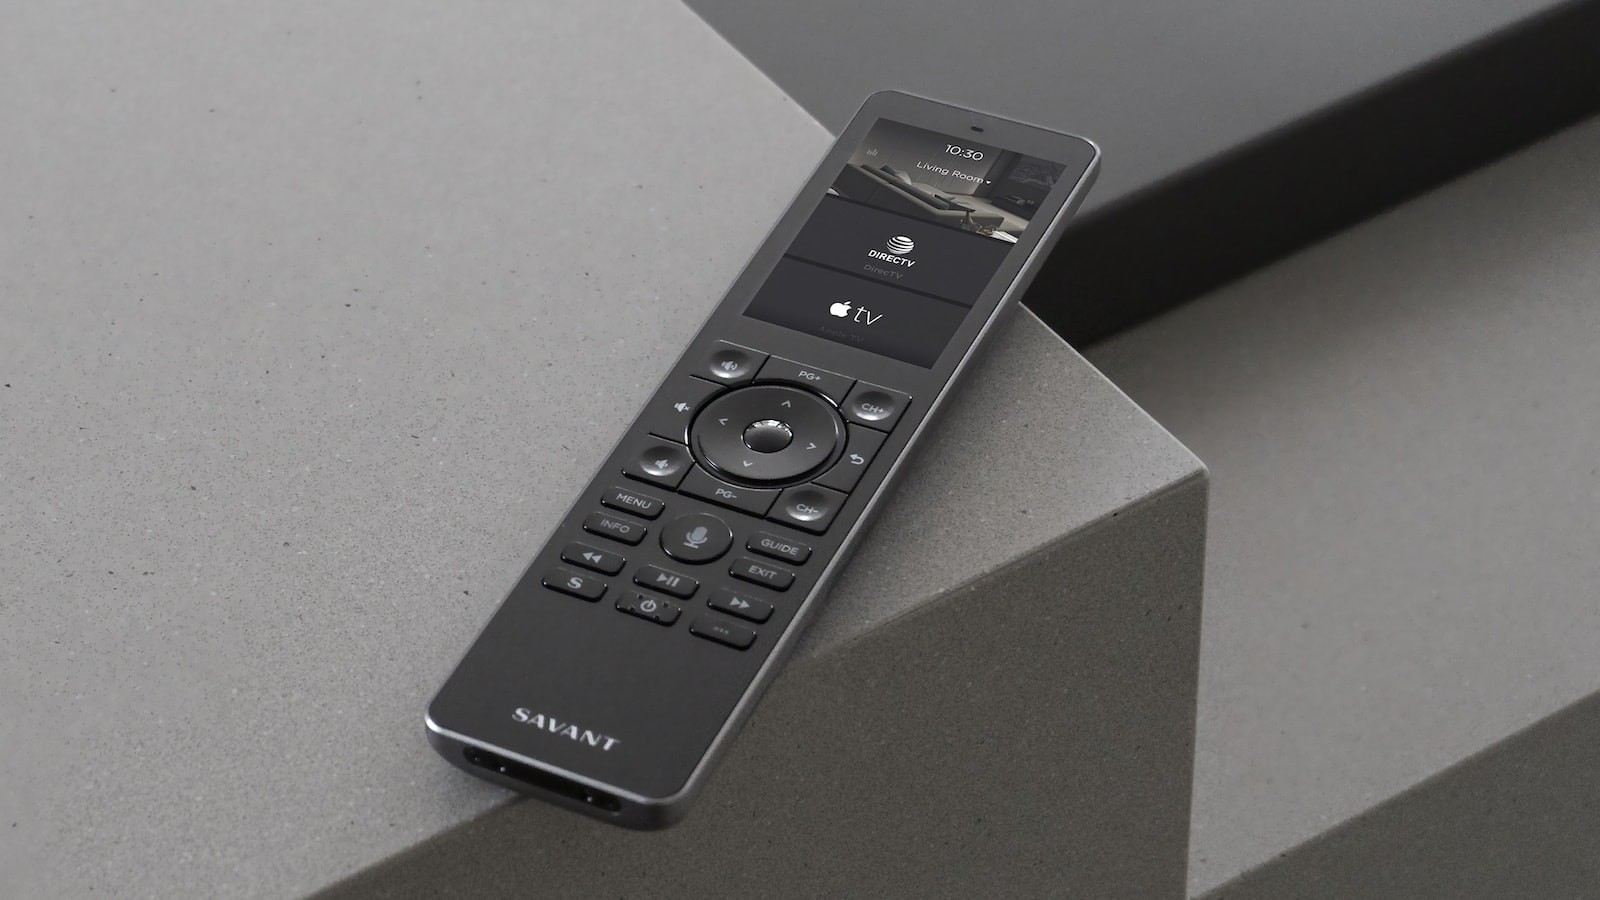 Savant Pro Remote X2 personalized controller gives you quick access to most-used items